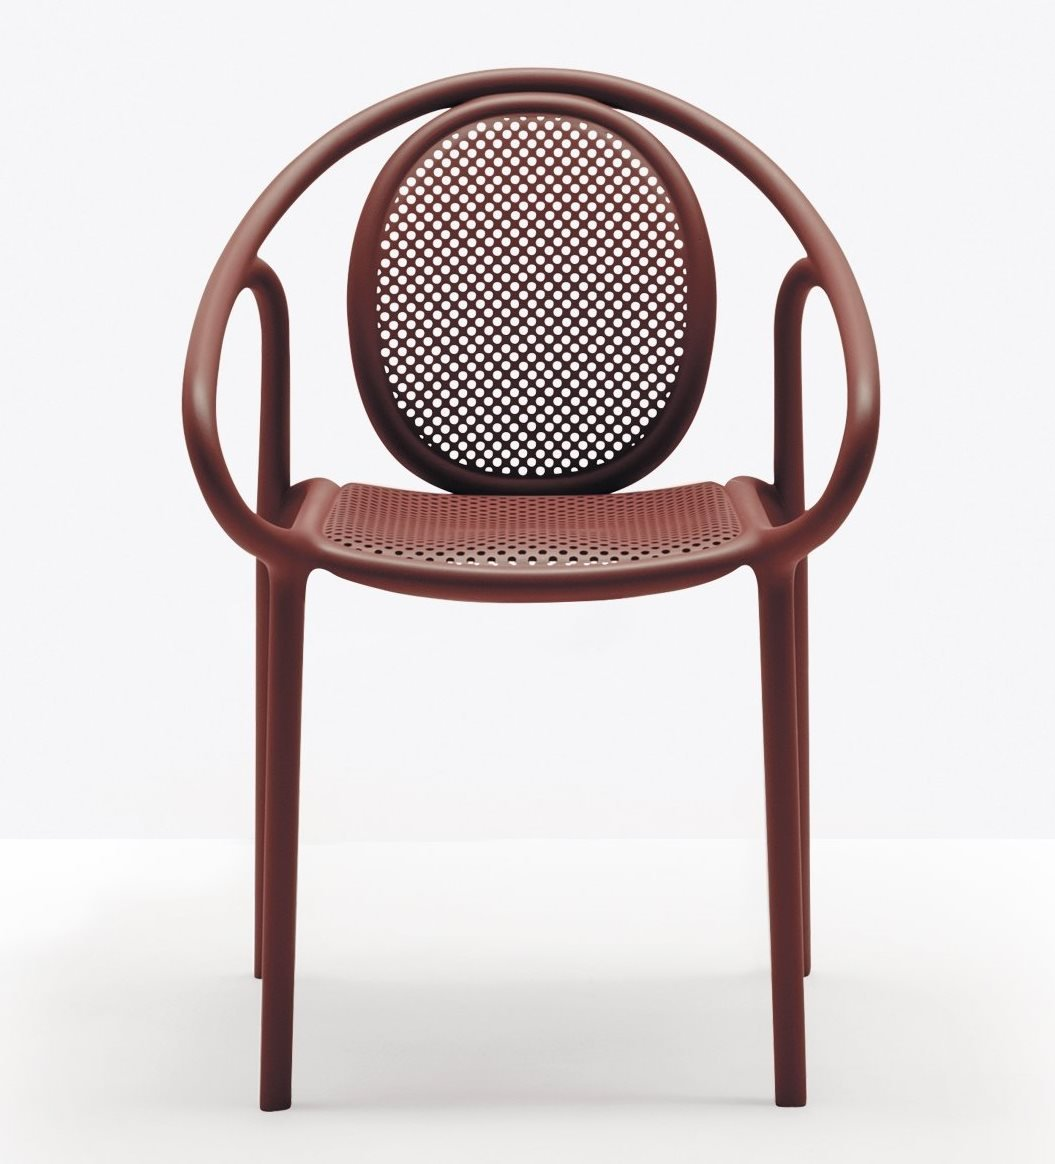 Remind Chair from Pedrali, designed by Eugeni Quitllet